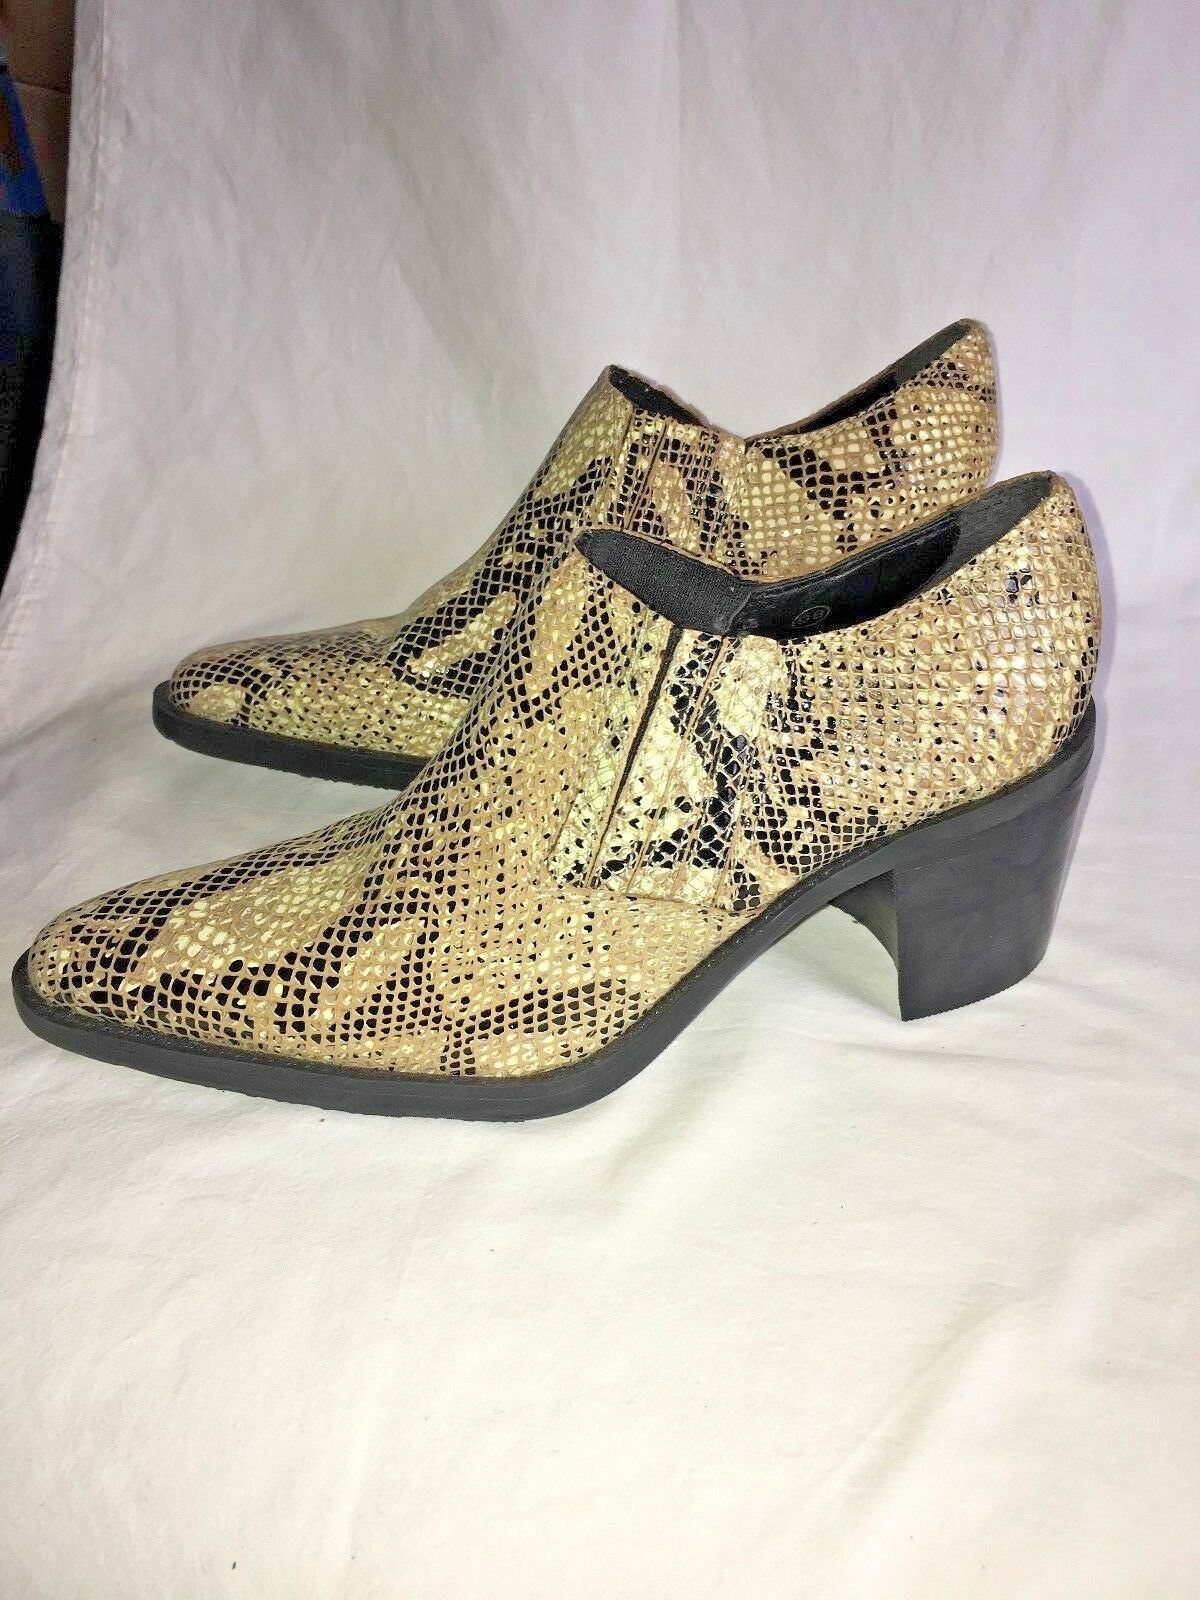 Seychelles women's booties snakeskin 7 M Flex Tread Like